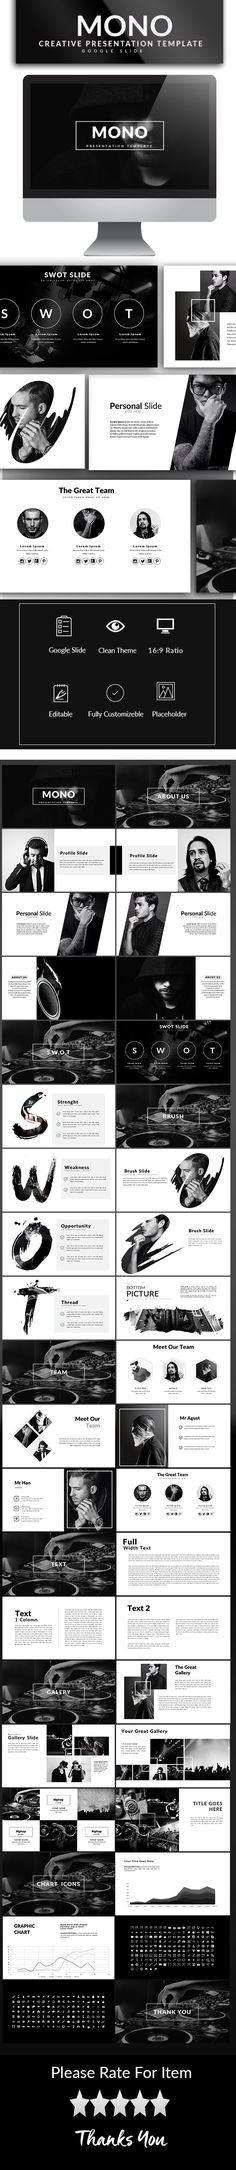 Mono Google Slide Template Mono Google Slide Template Flat, Clean, Minimalist, Elegant and Flexible Google Slide Presentation Template, perfect for Corporate Presentation and personal use. Very easy to change the color schemes.